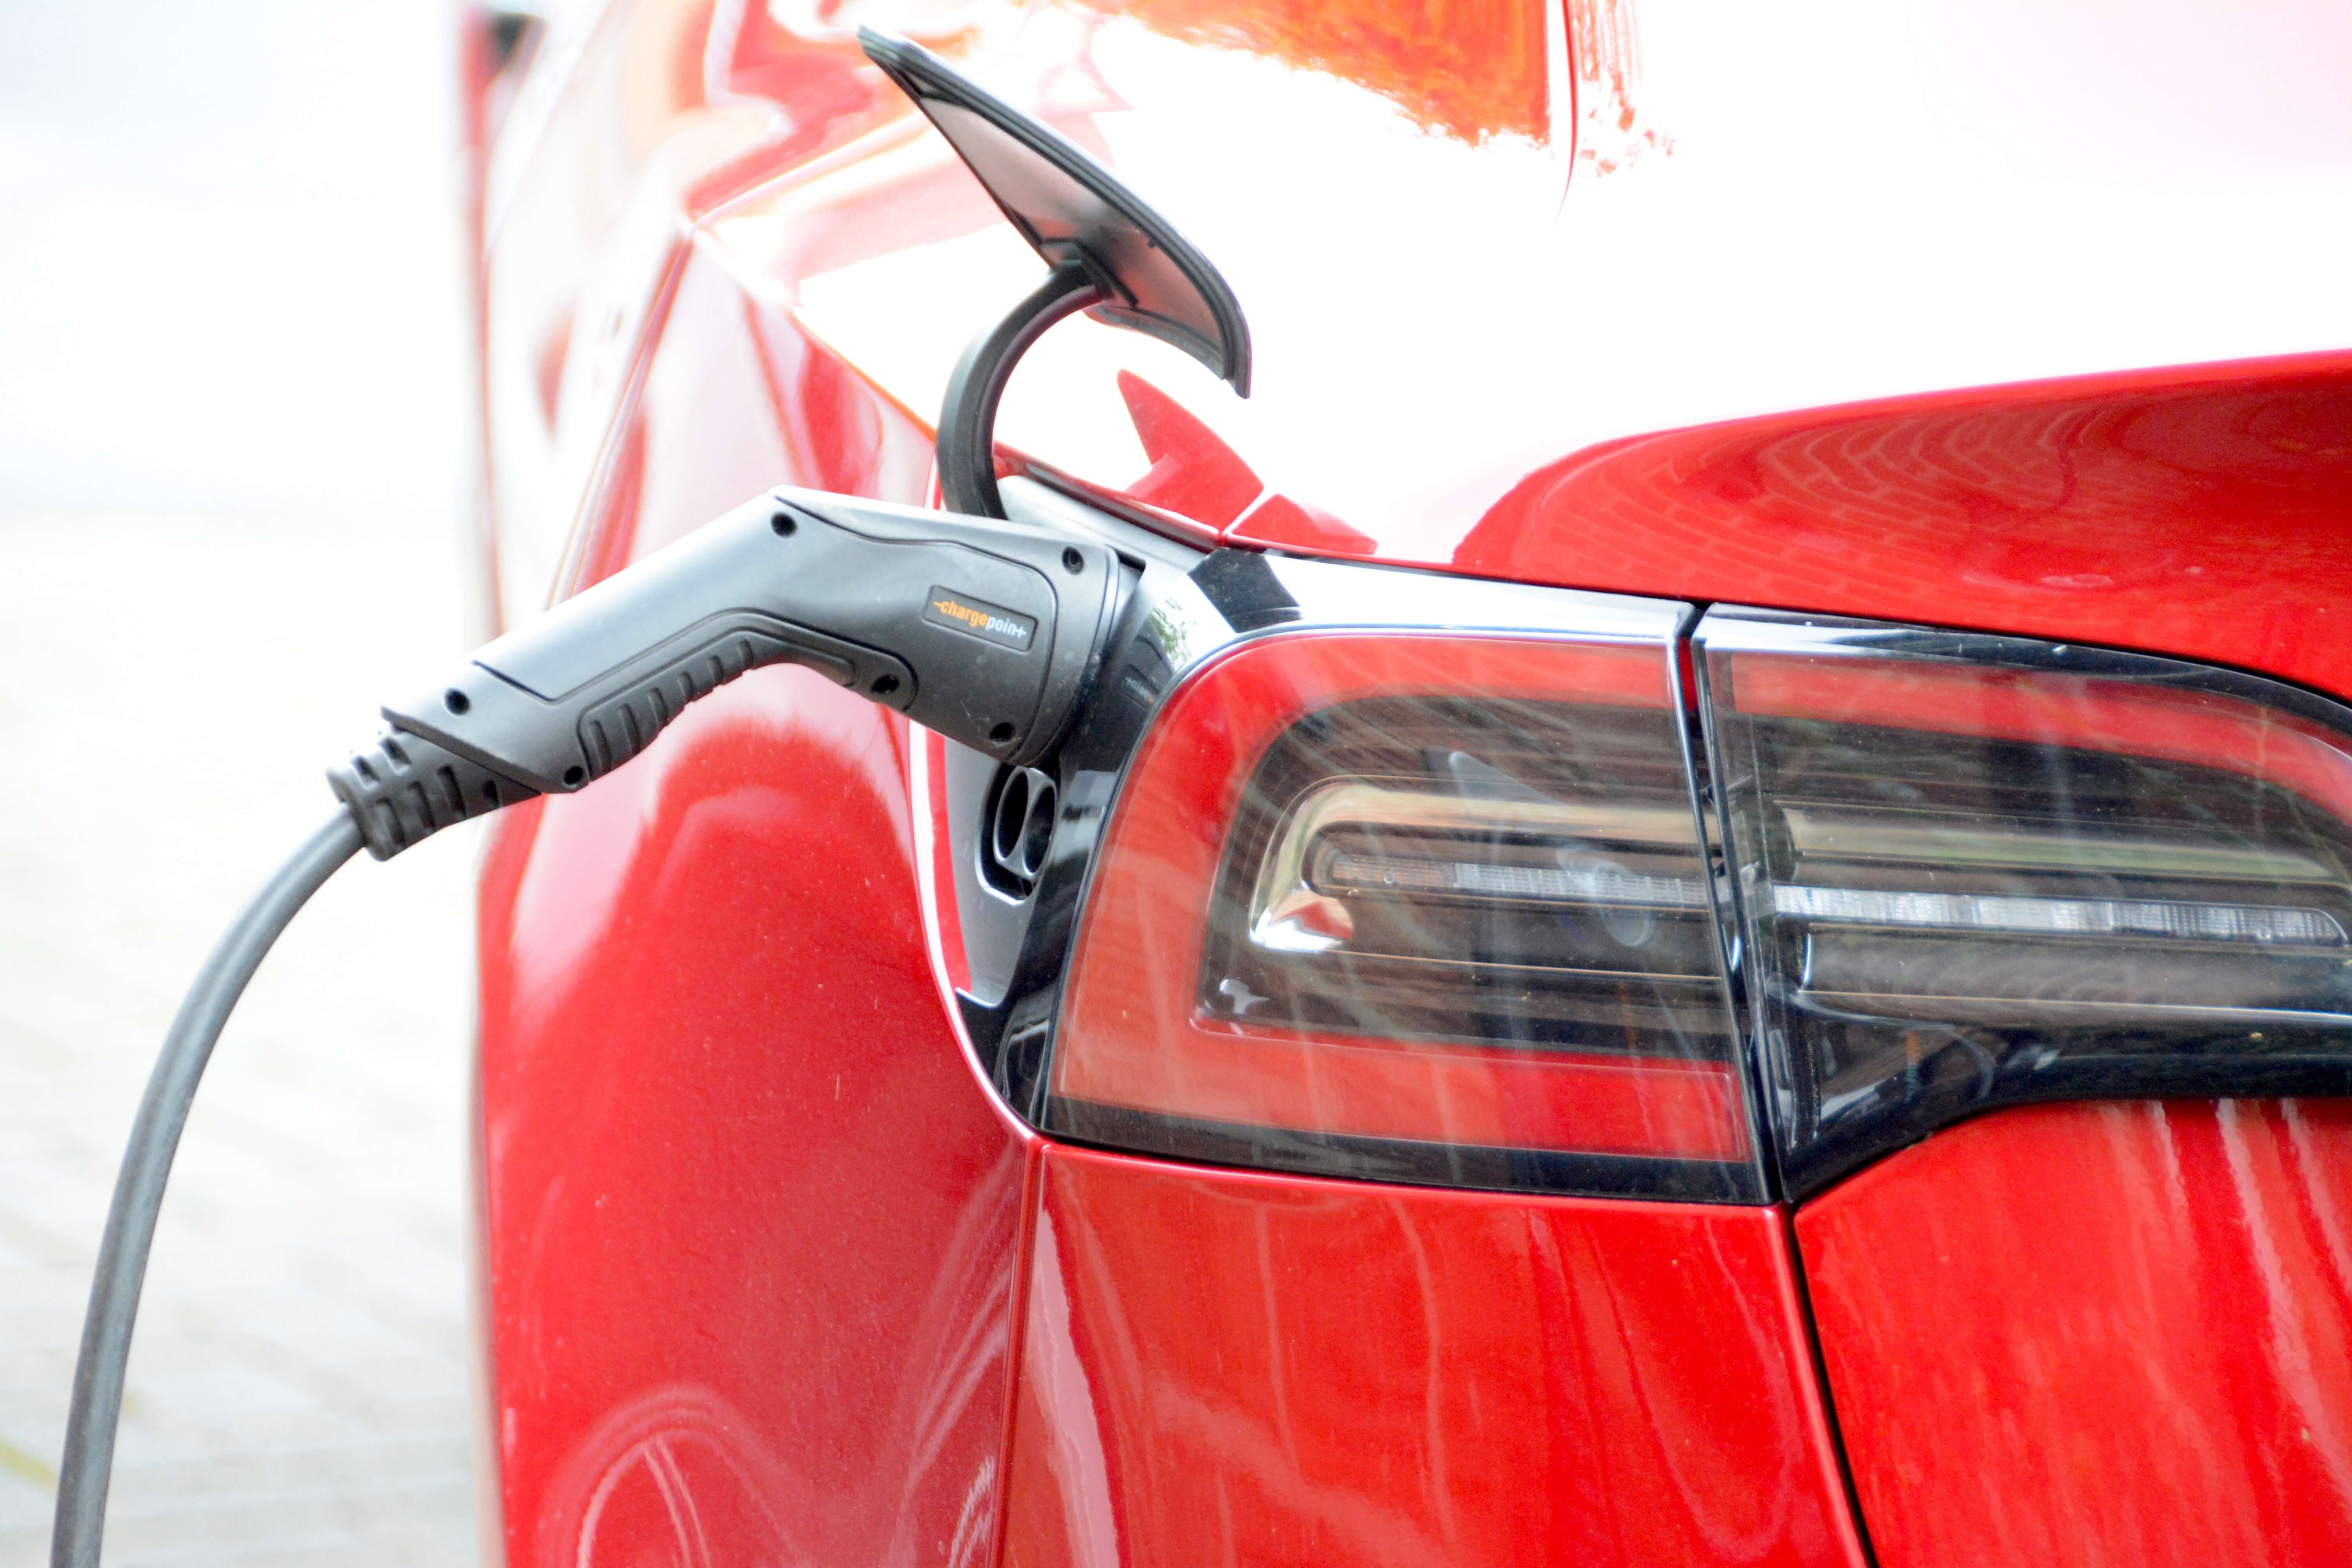 Electric vehicles expected to account for a third of the market by 2030